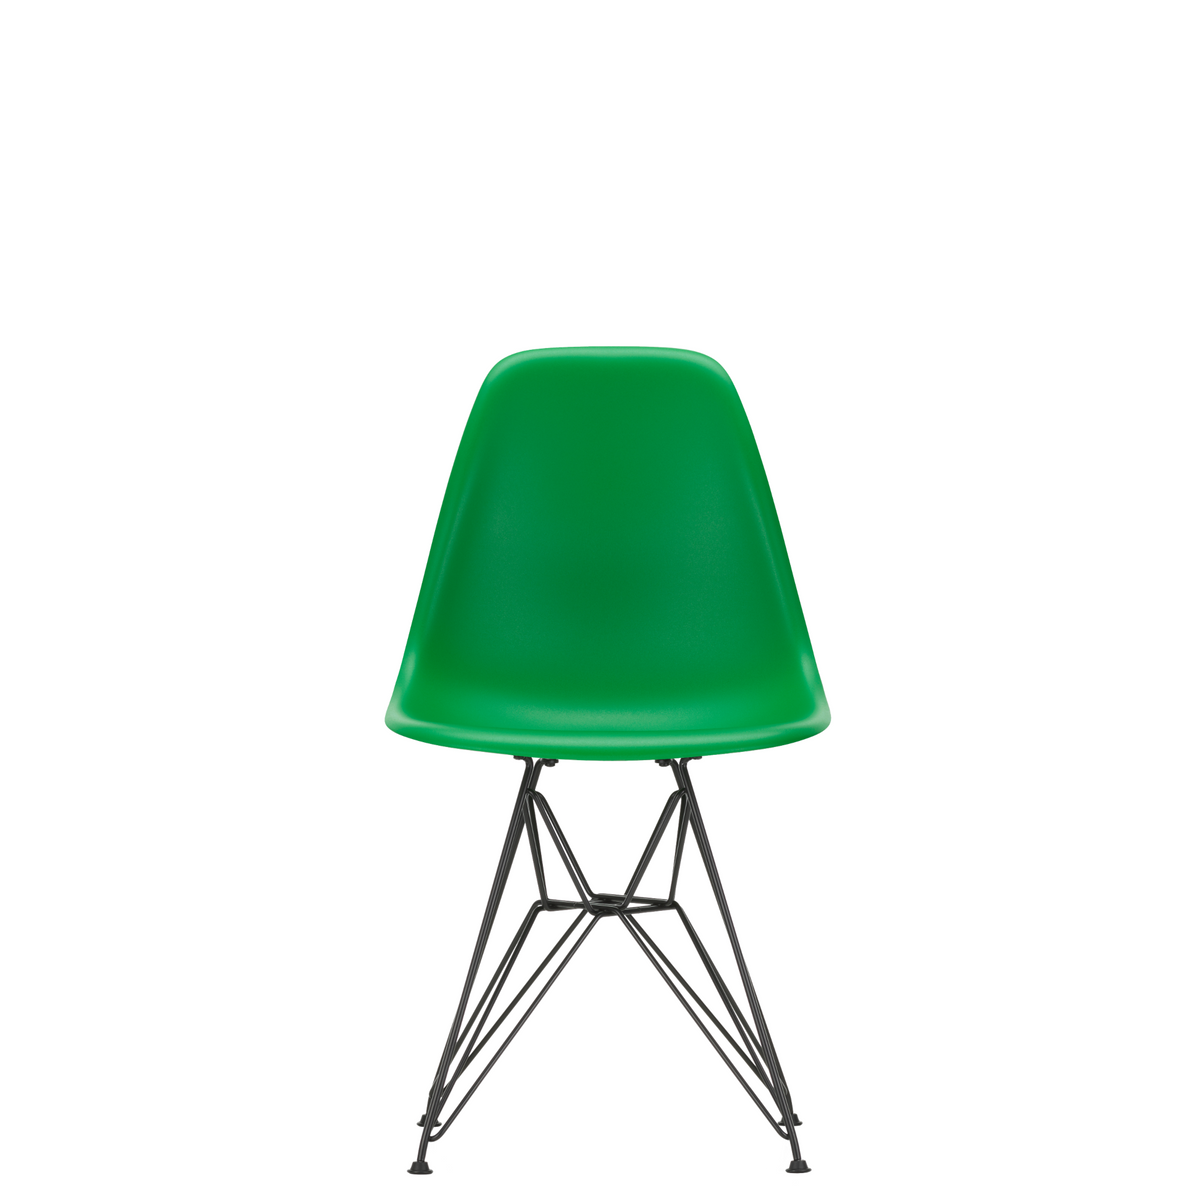 Vitra Eames Plastic Side Chair DSR Powder Coated for Outdoor Use Pale Green Shell Black Powdercoated Base